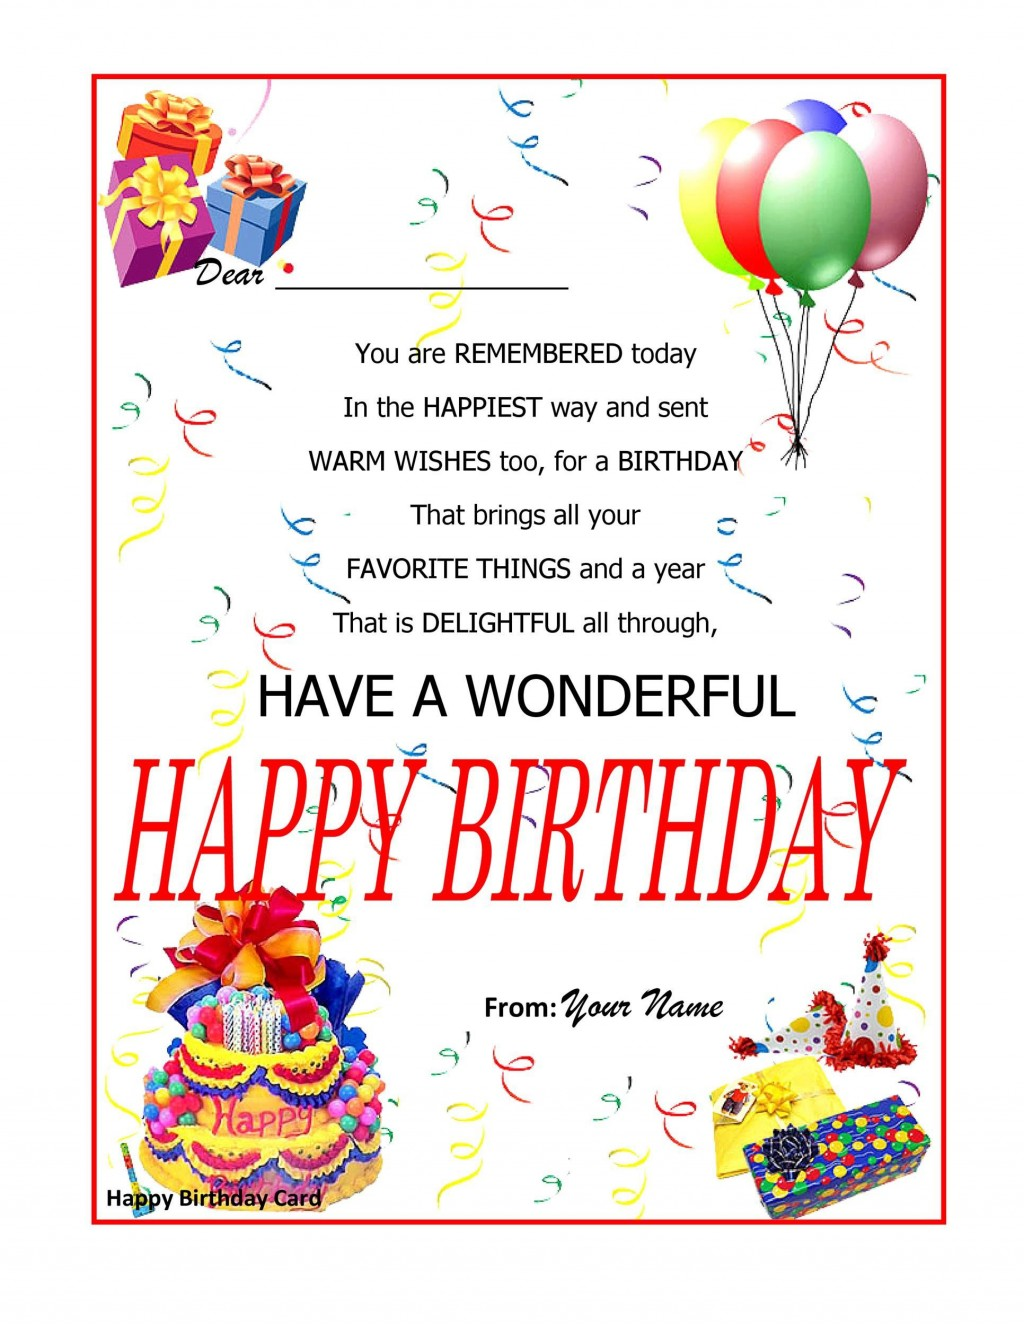 003 Beautiful Birthday Card Template Word Example  Blank Greeting Microsoft 2010Large